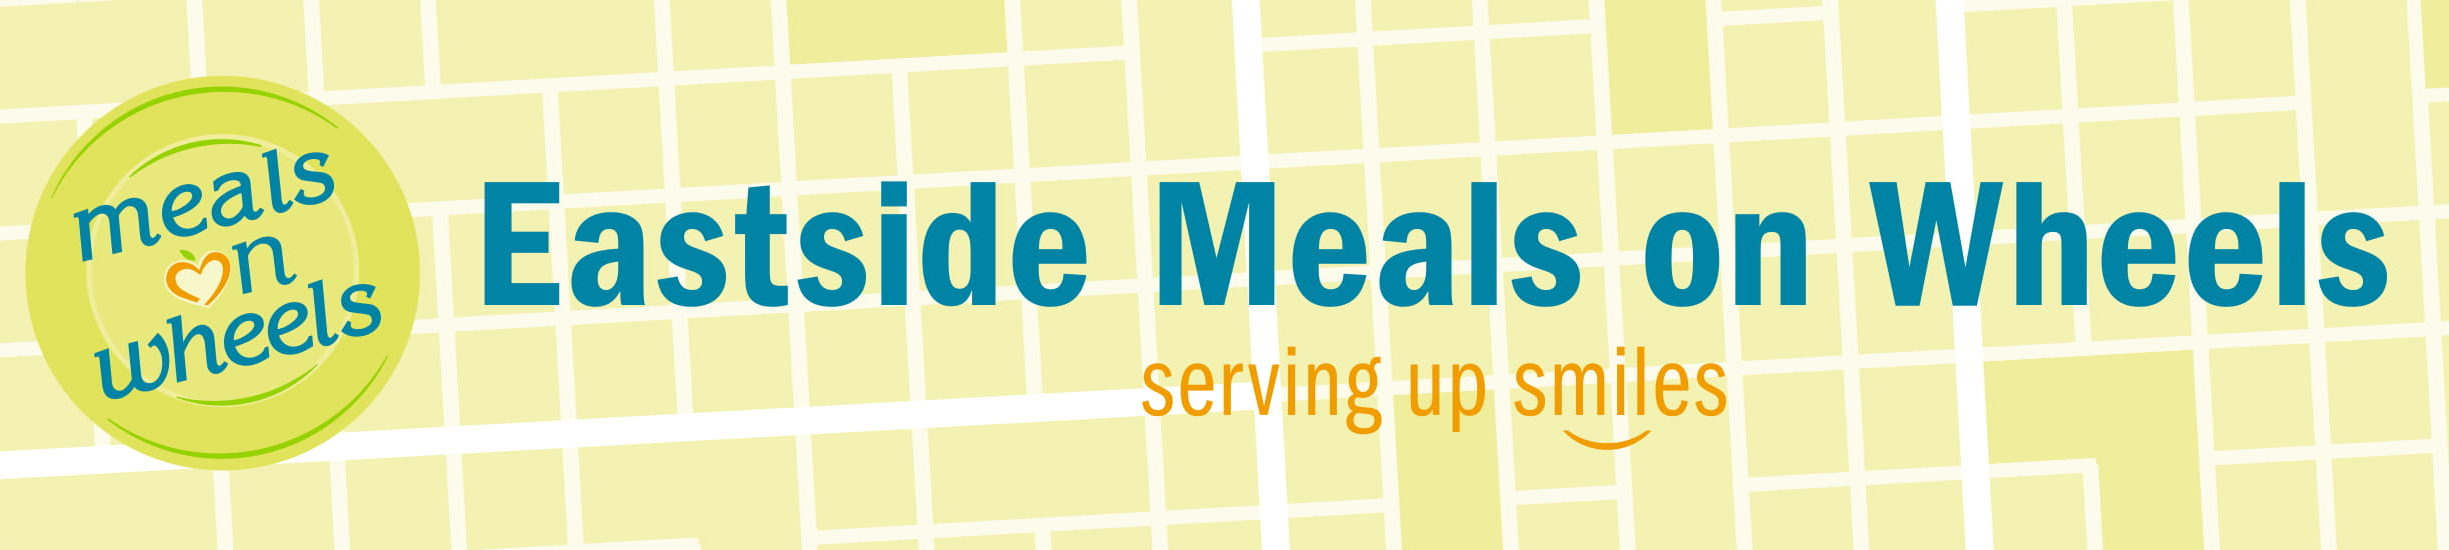 Eastside Meals on Wheels